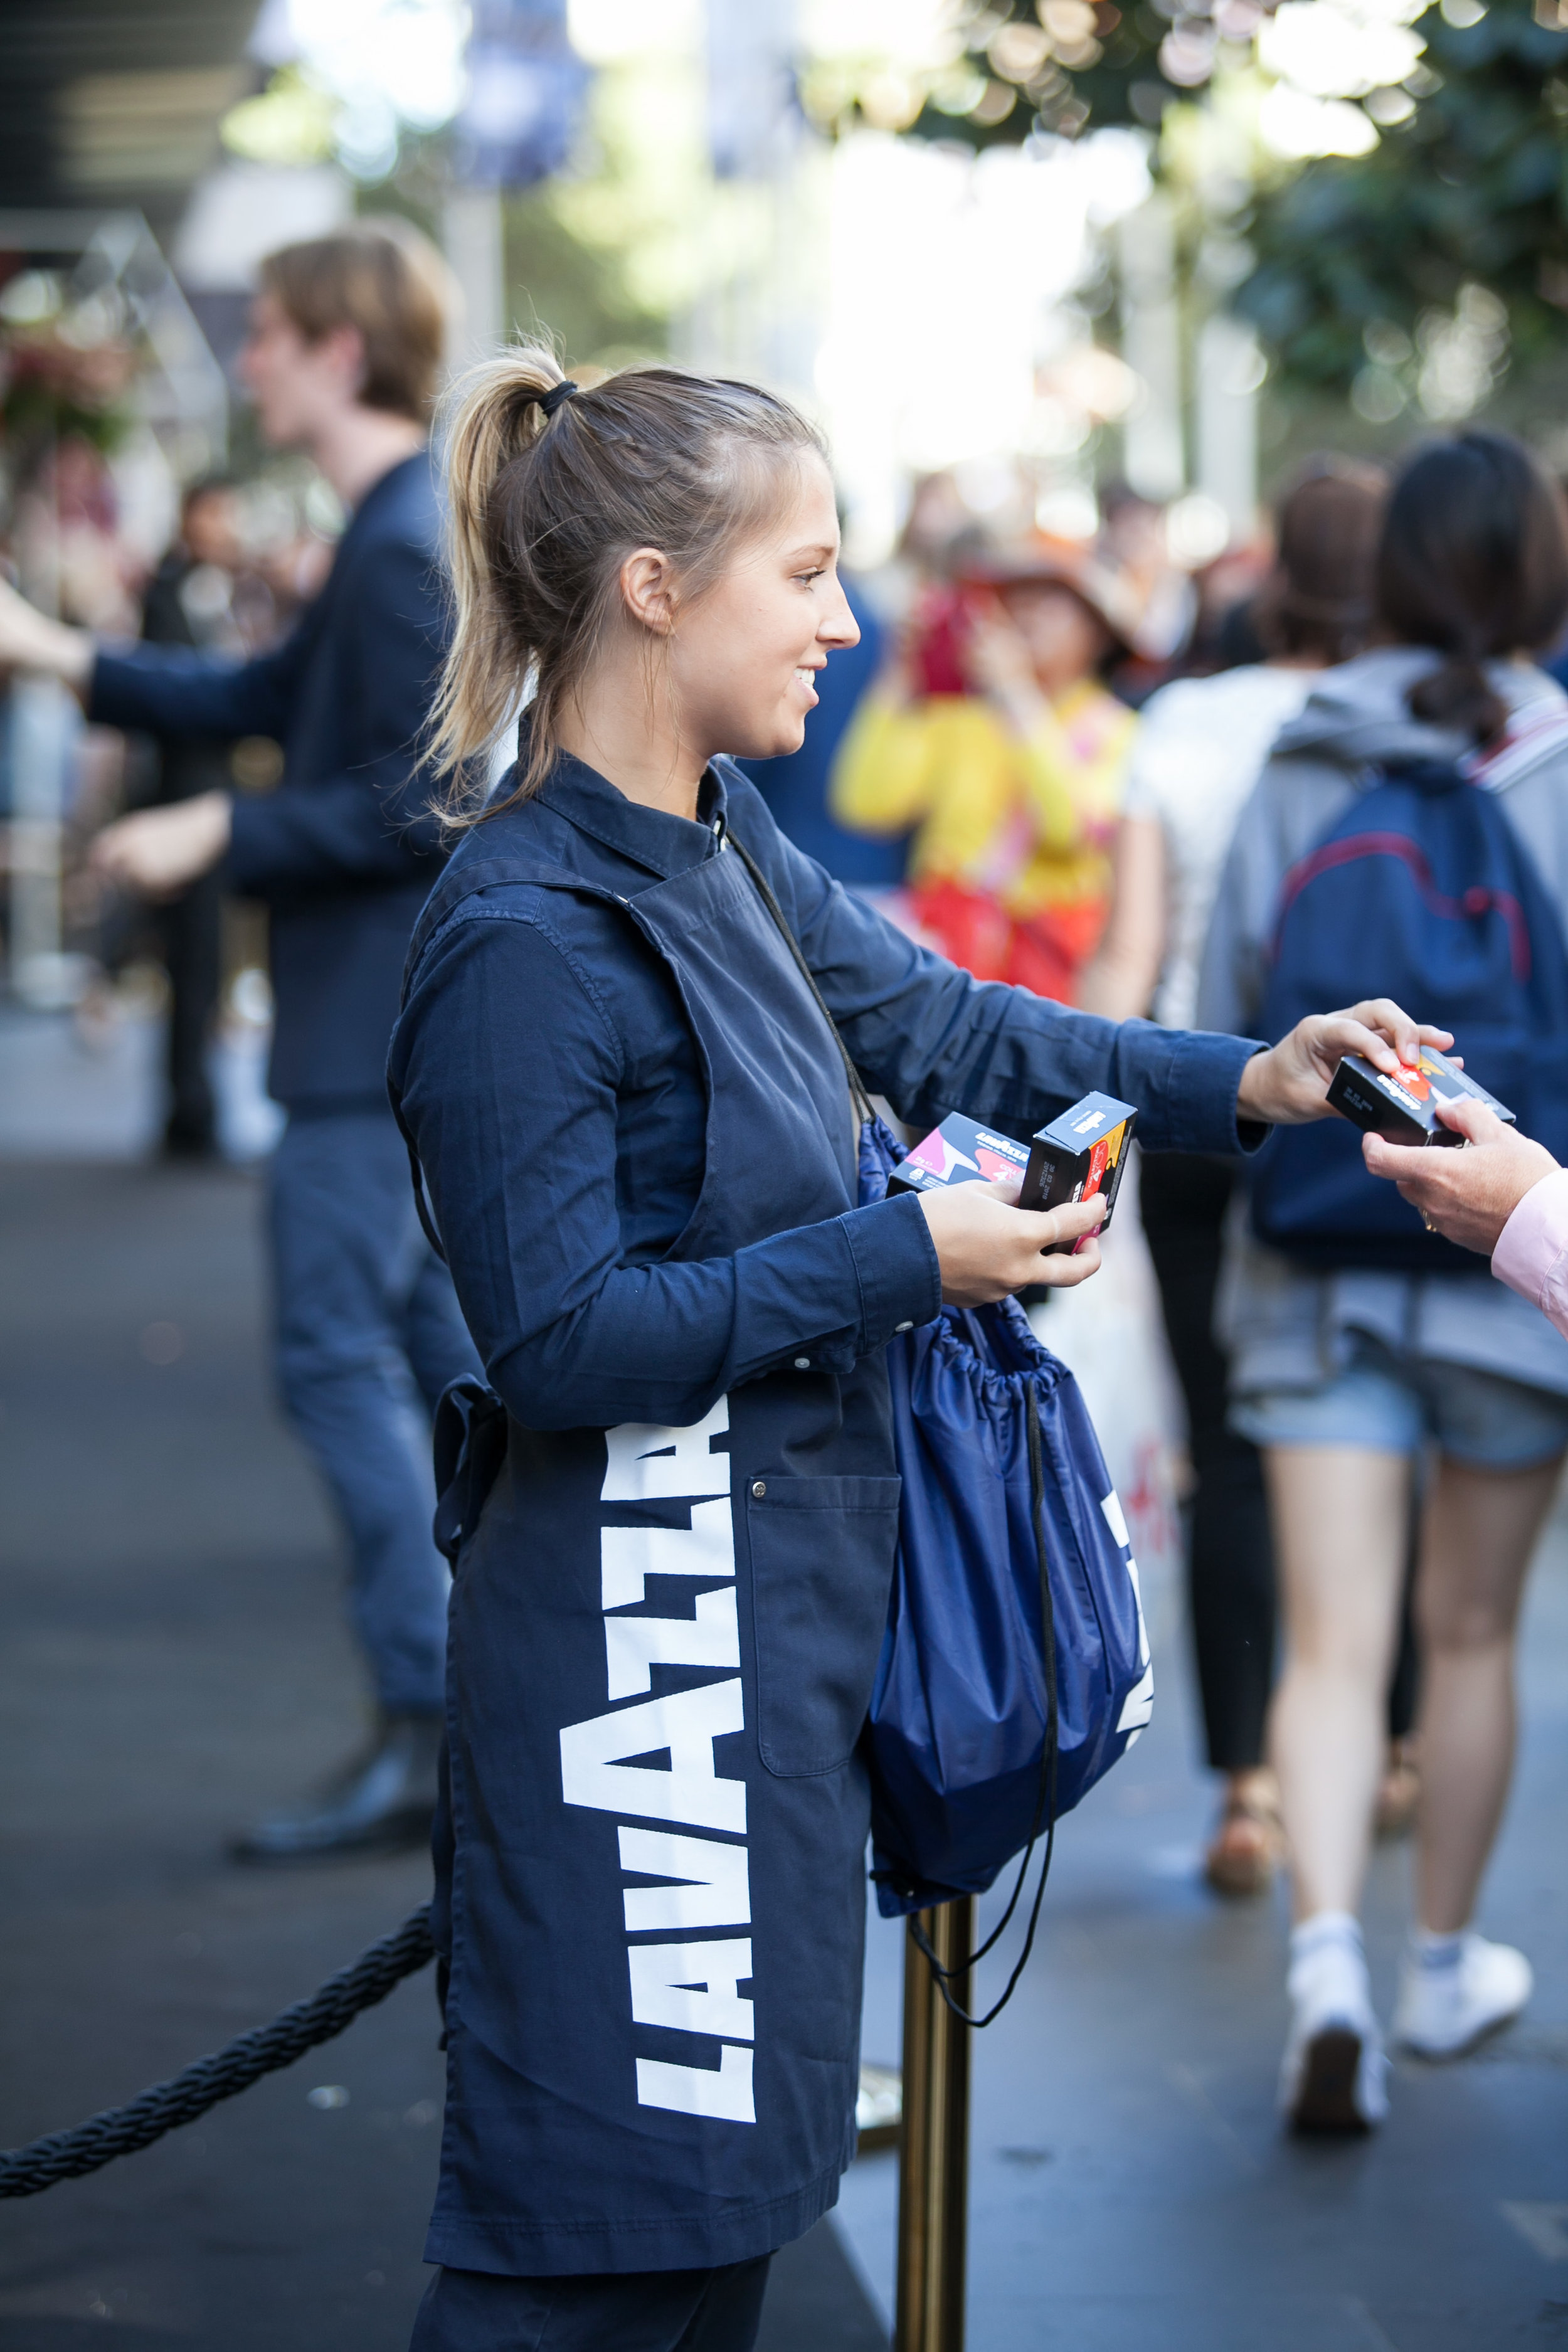 lavazza-vamff-2017-day-4-lavazza-coffee-giveout.JPG